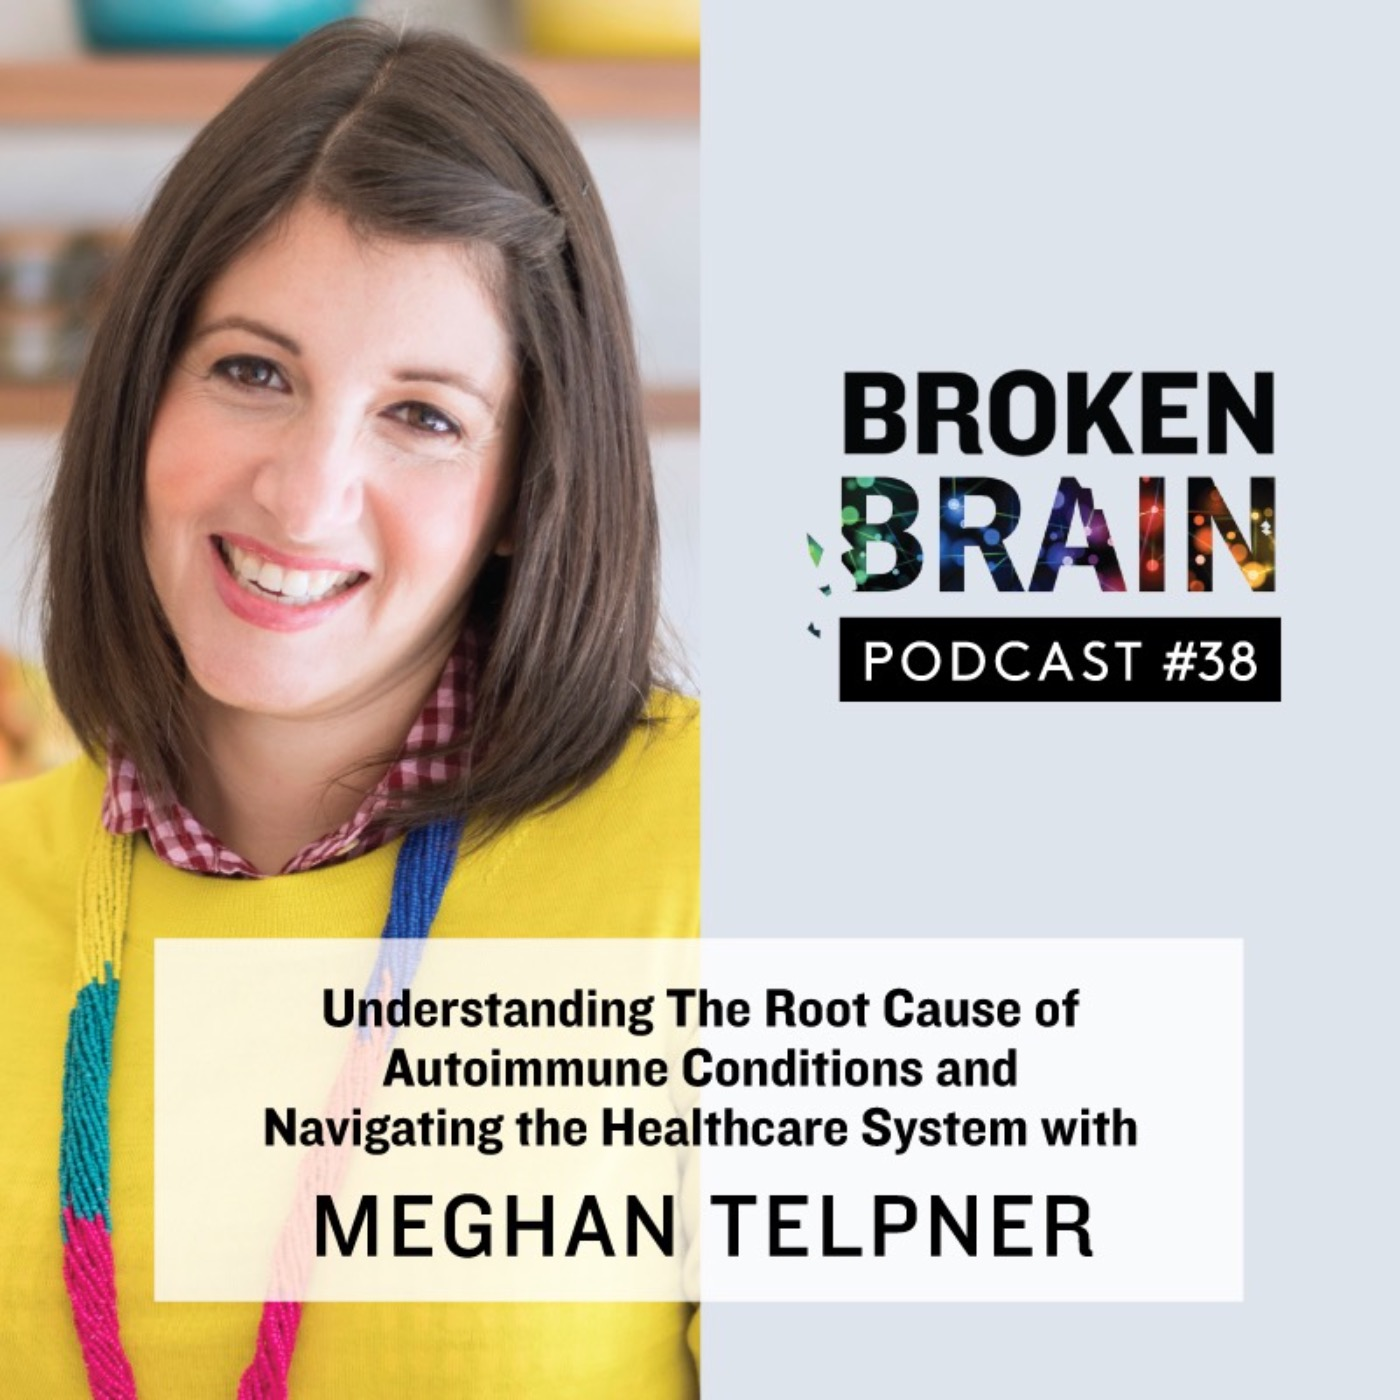 #38: Understanding The Root Cause of Autoimmune Conditions and Navigating the Healthcare System with Meghan Telpner